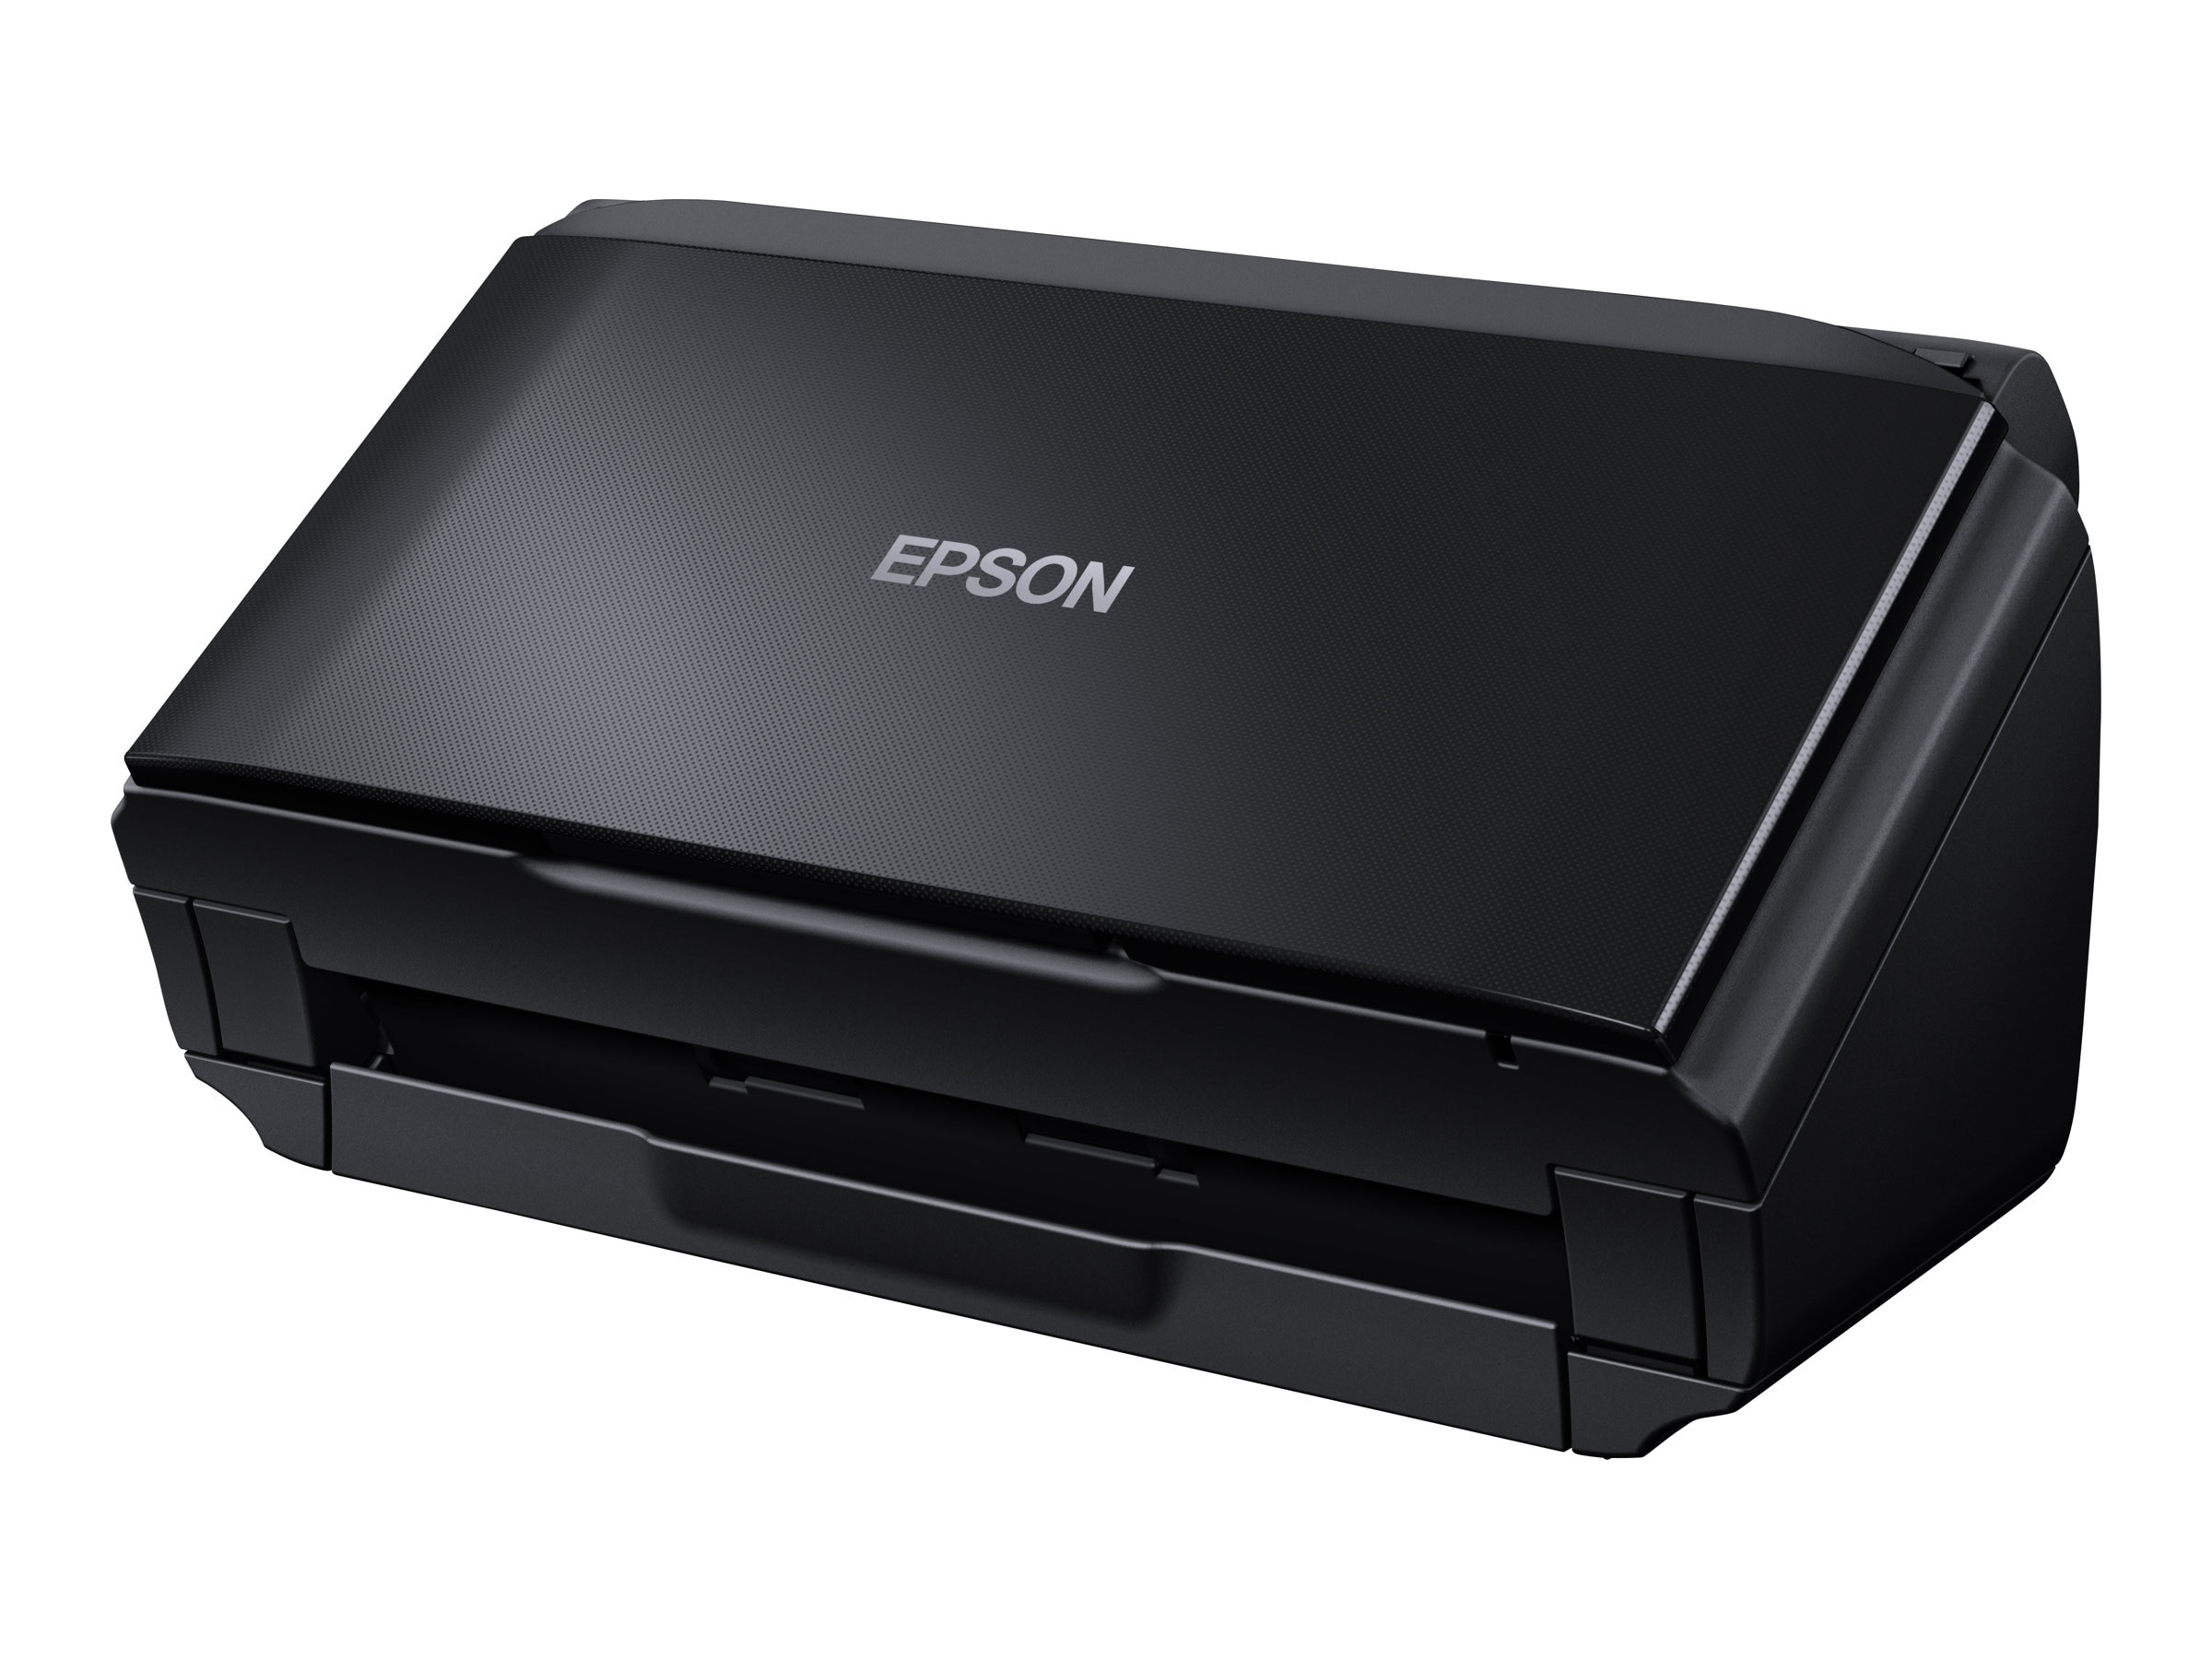 Epson WorkForce DS-510 26ppm 50-page ADF Document Scanner, B11B209201, 16353951, Scanners